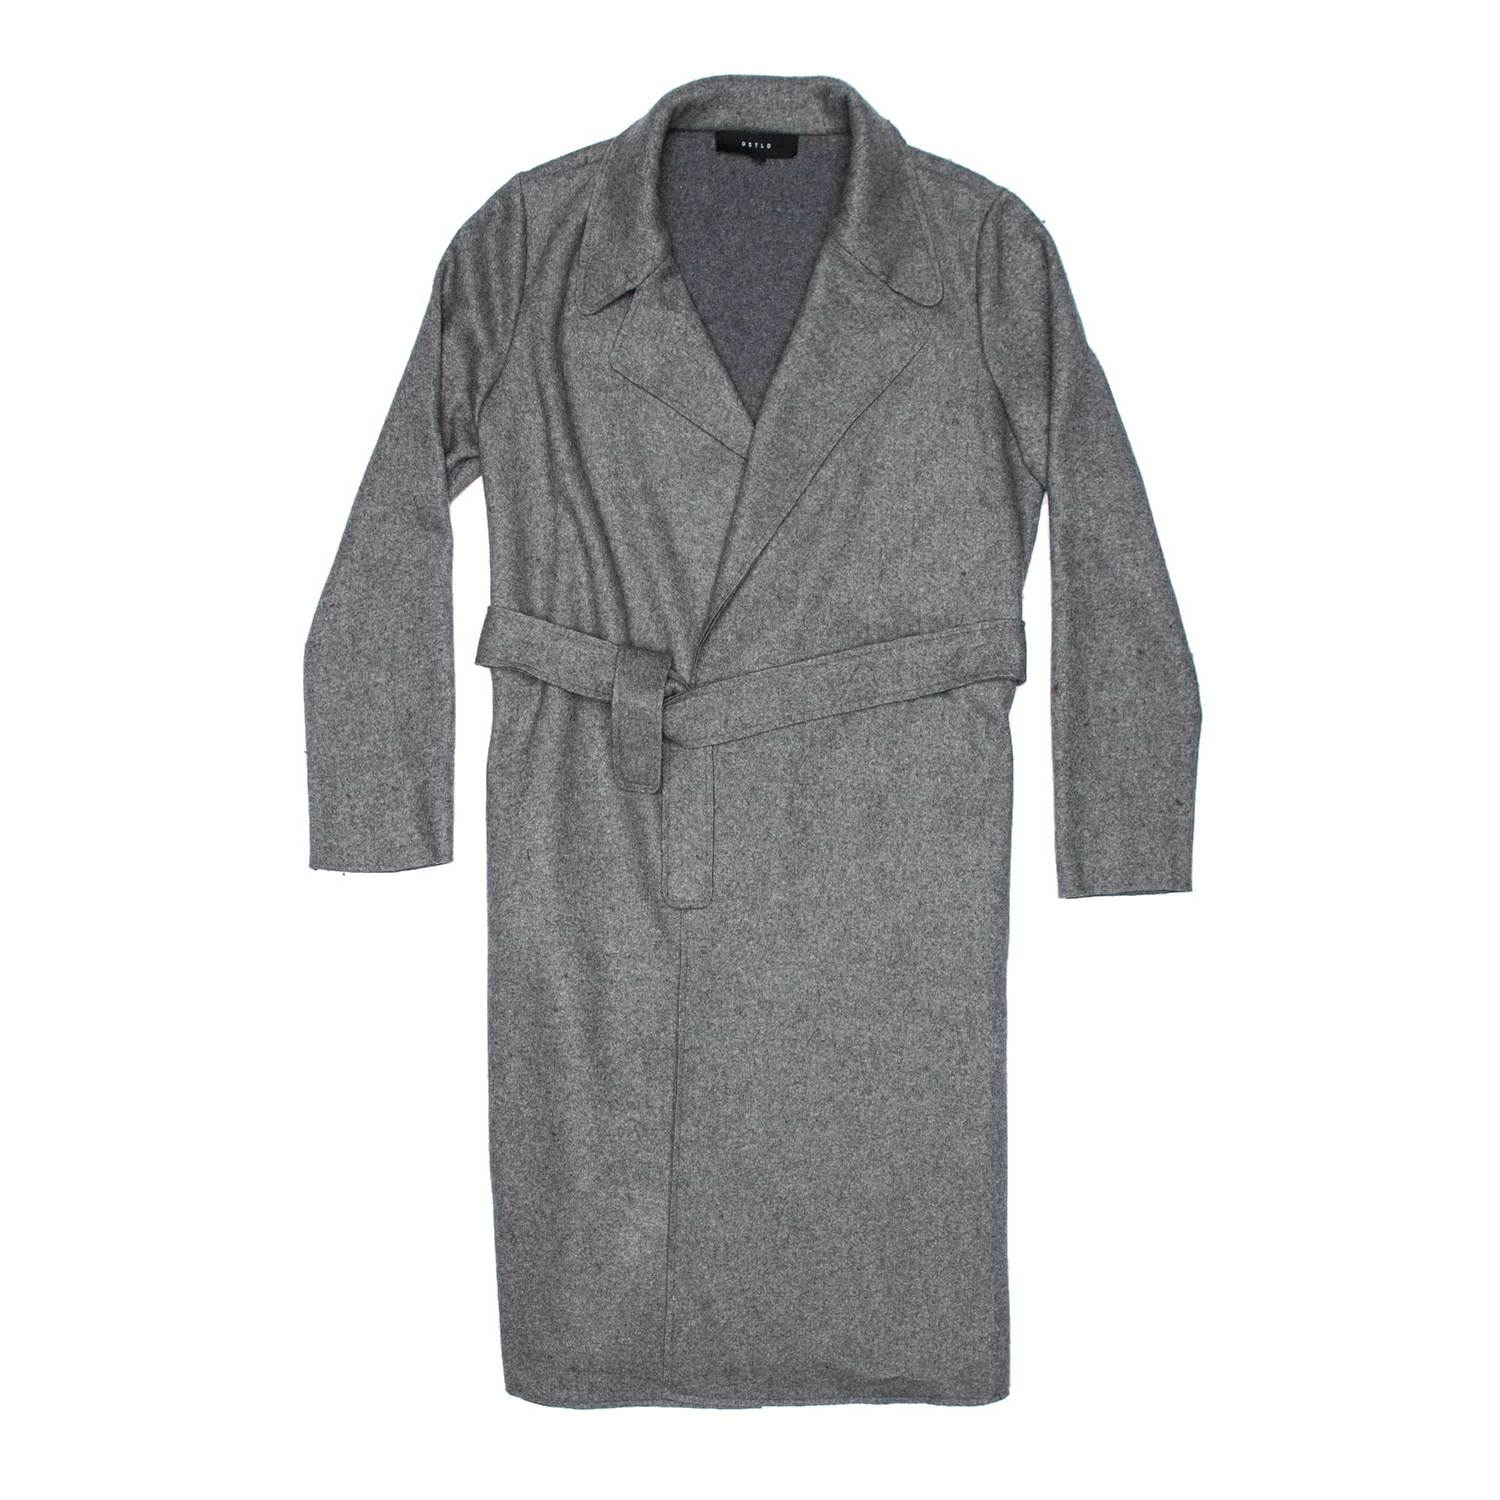 Womens Wool Blanket Maxi Coat In Grey $180 | DSTLD